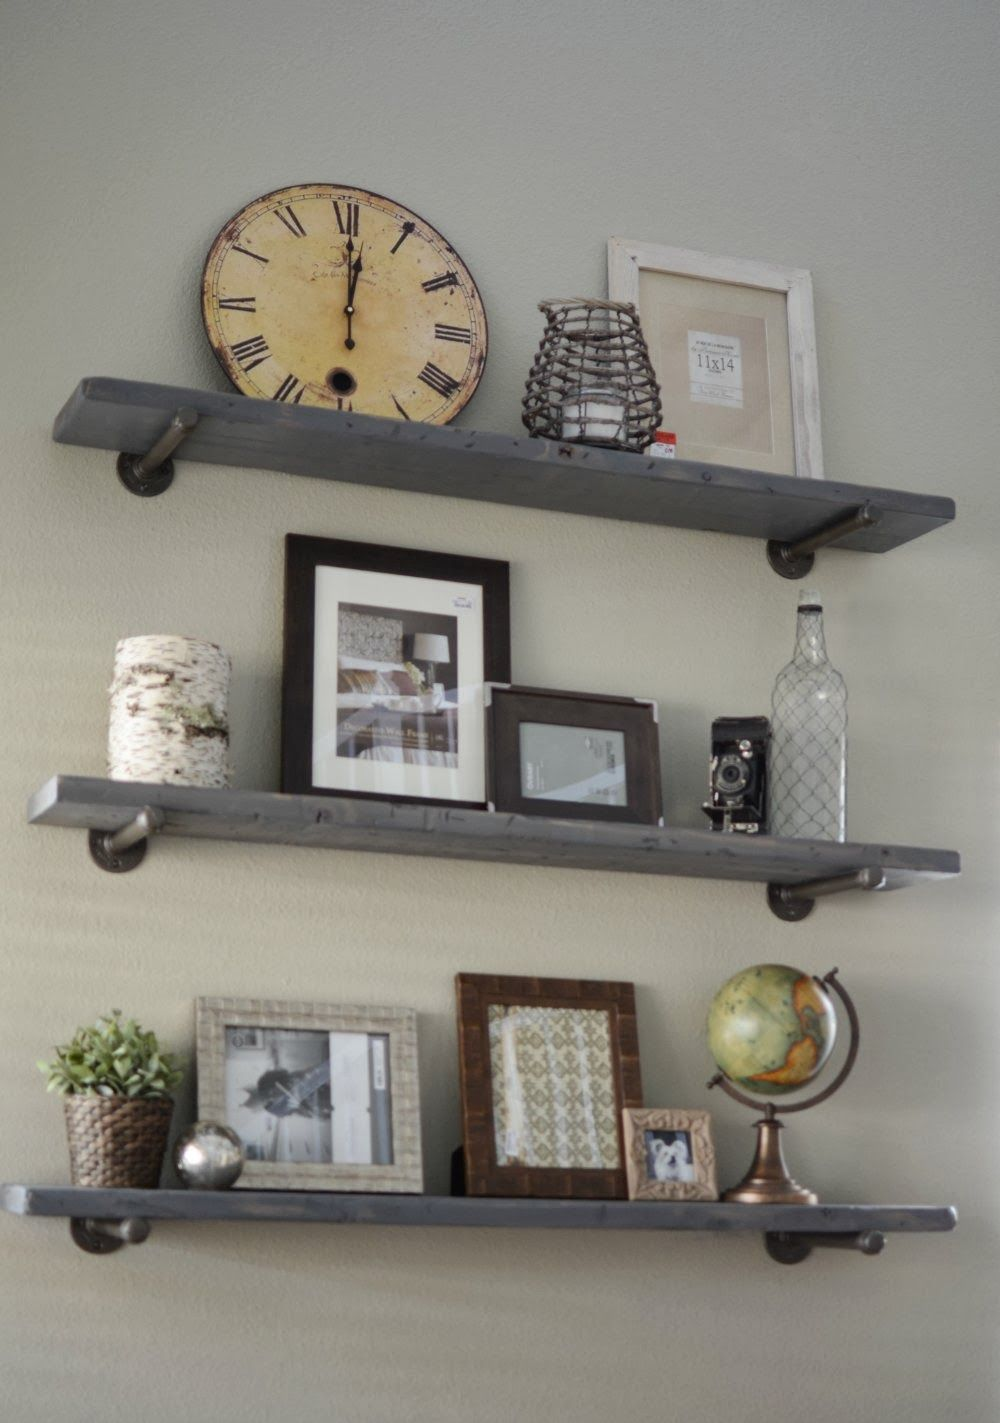 How To Make Restoration Hardware Shelves Diy Six 3 4 X 10 Galvanized Pipe Floor And End Caps Be The Wall Bracket For Shelf